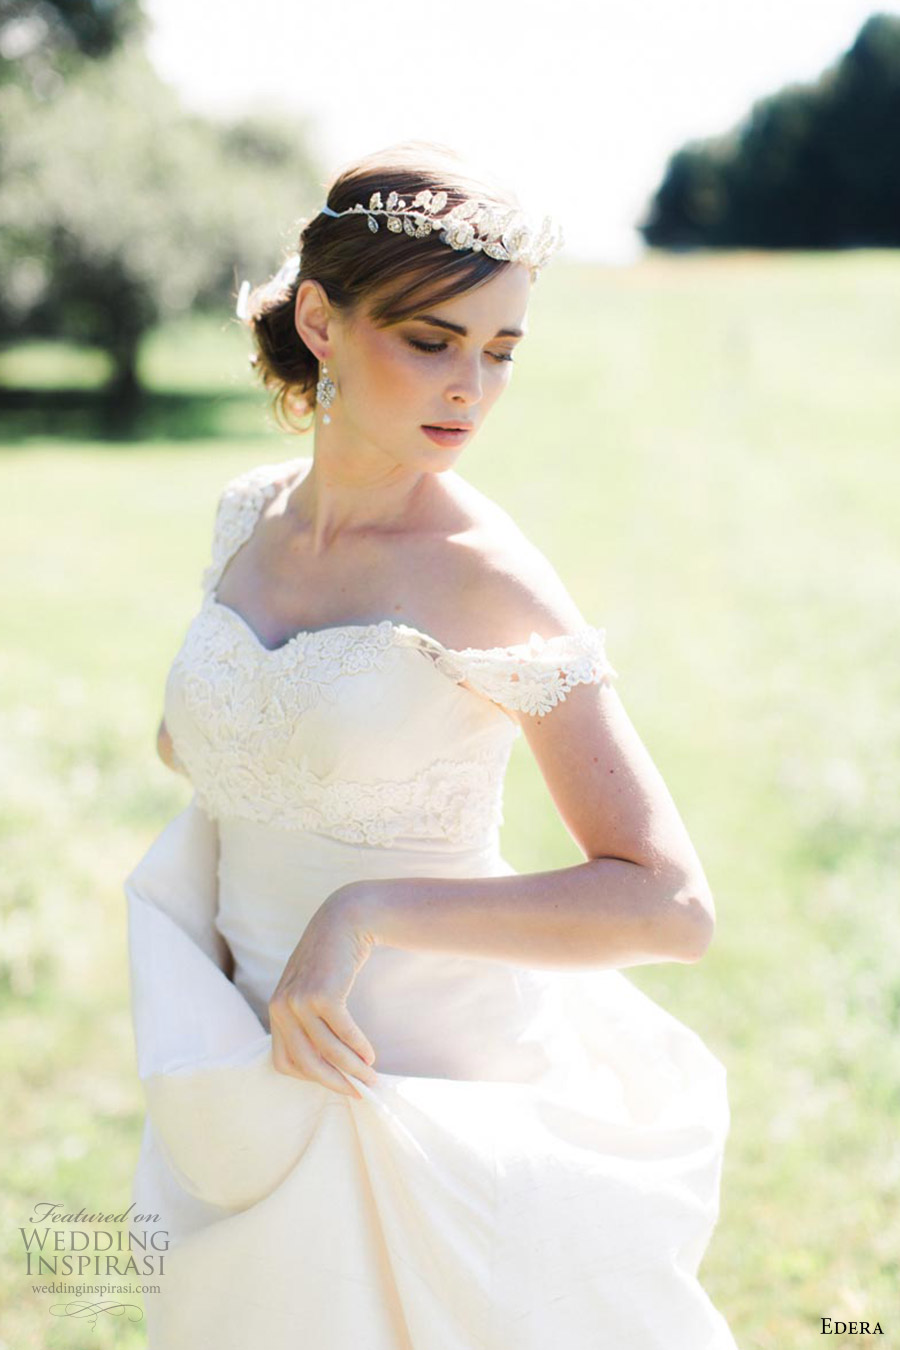 edera jewelry 2016 bridal accessories collection (aquarelle) tiara mood gown outdoor ashley largesse photography